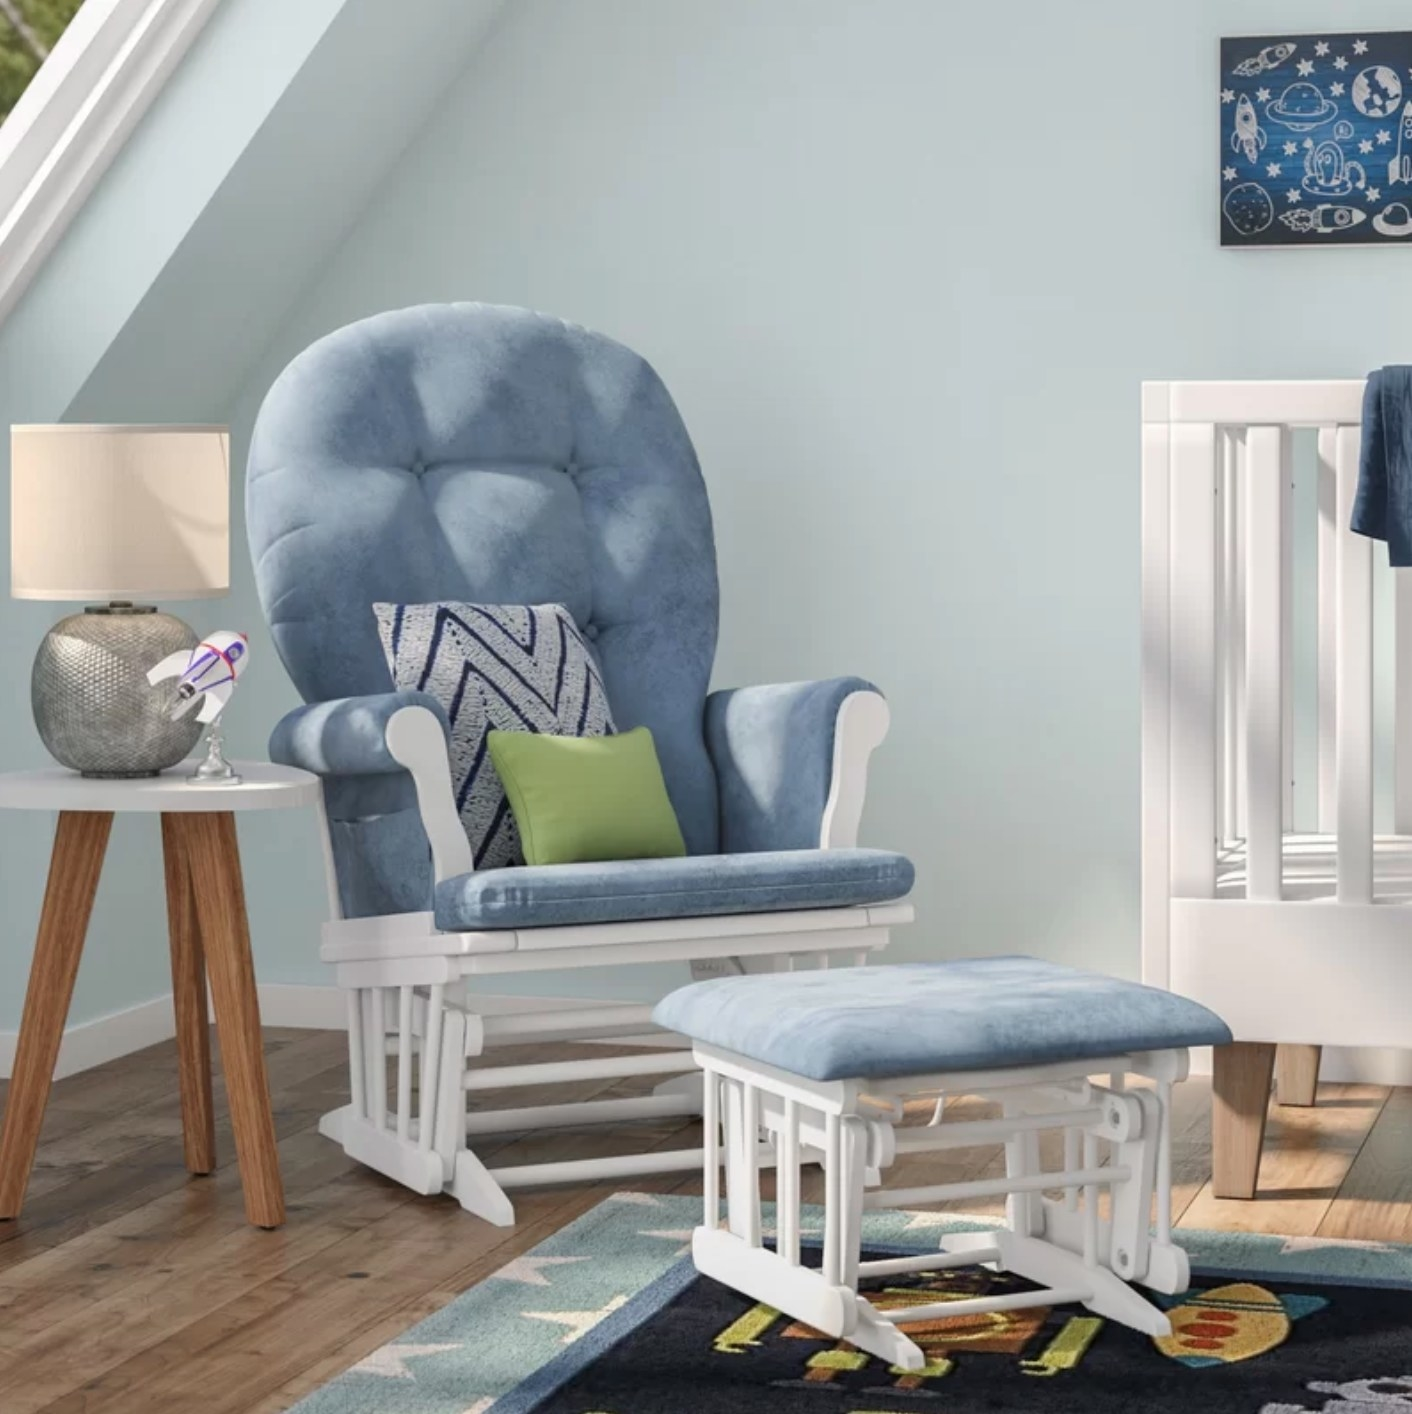 The rocking chair and ottoman in blue and white